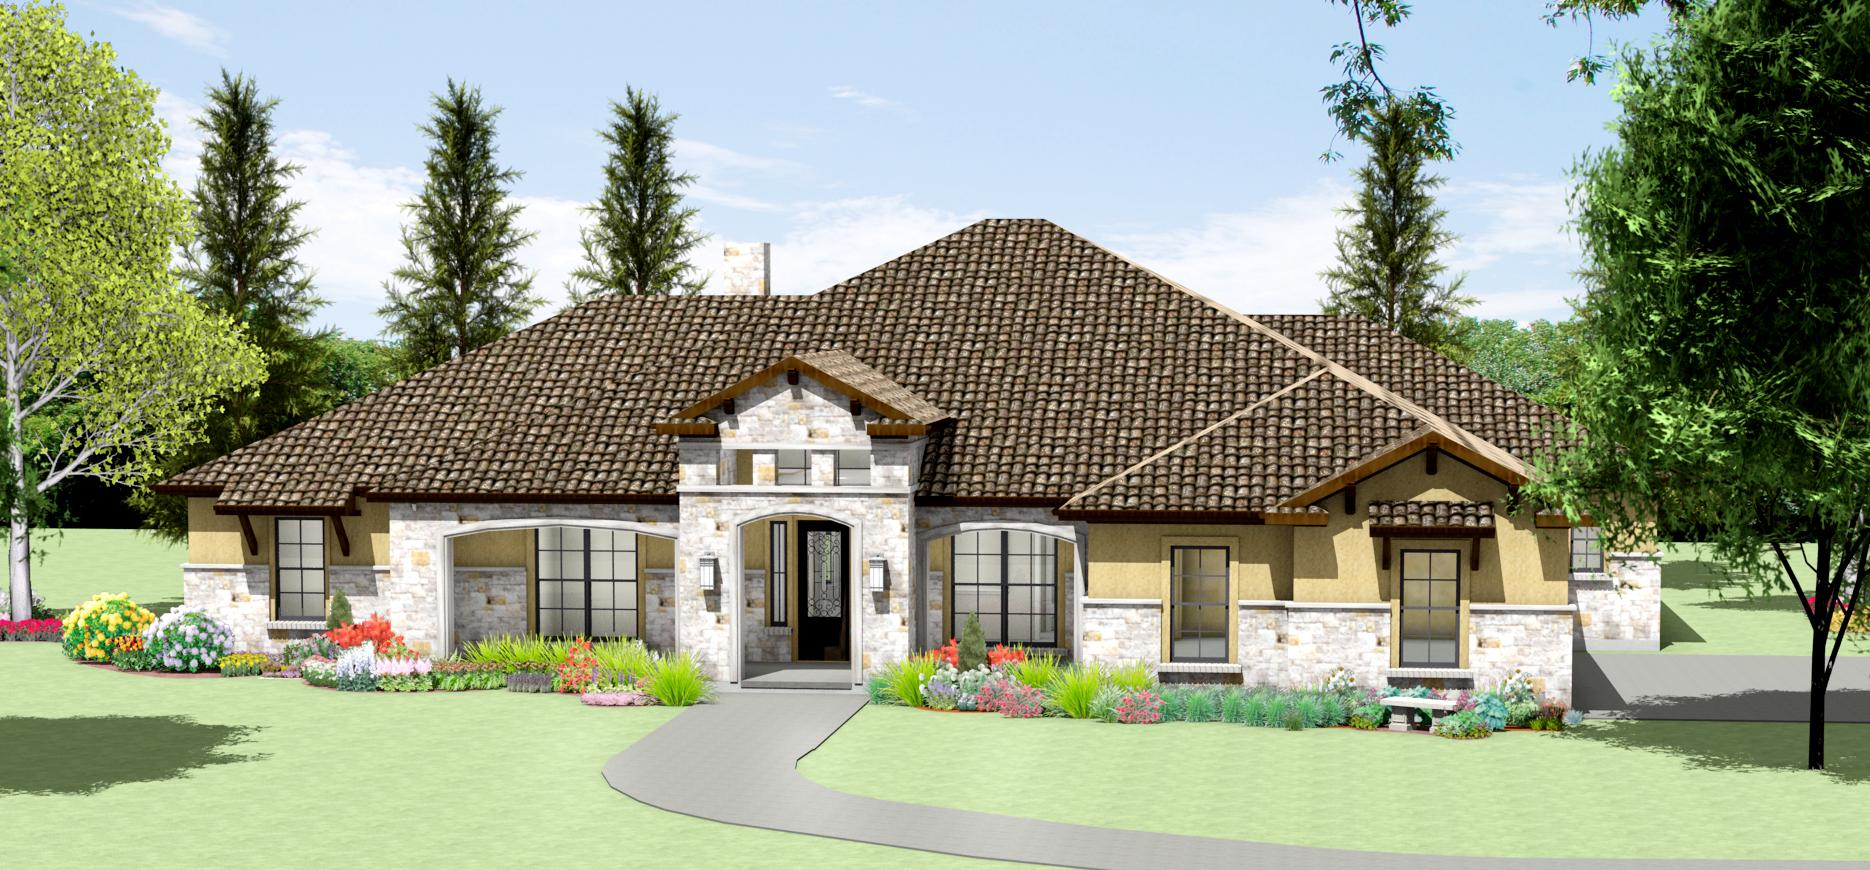 S3450r texas tuscan design texas house plans over 700 for Texas farmhouse plans